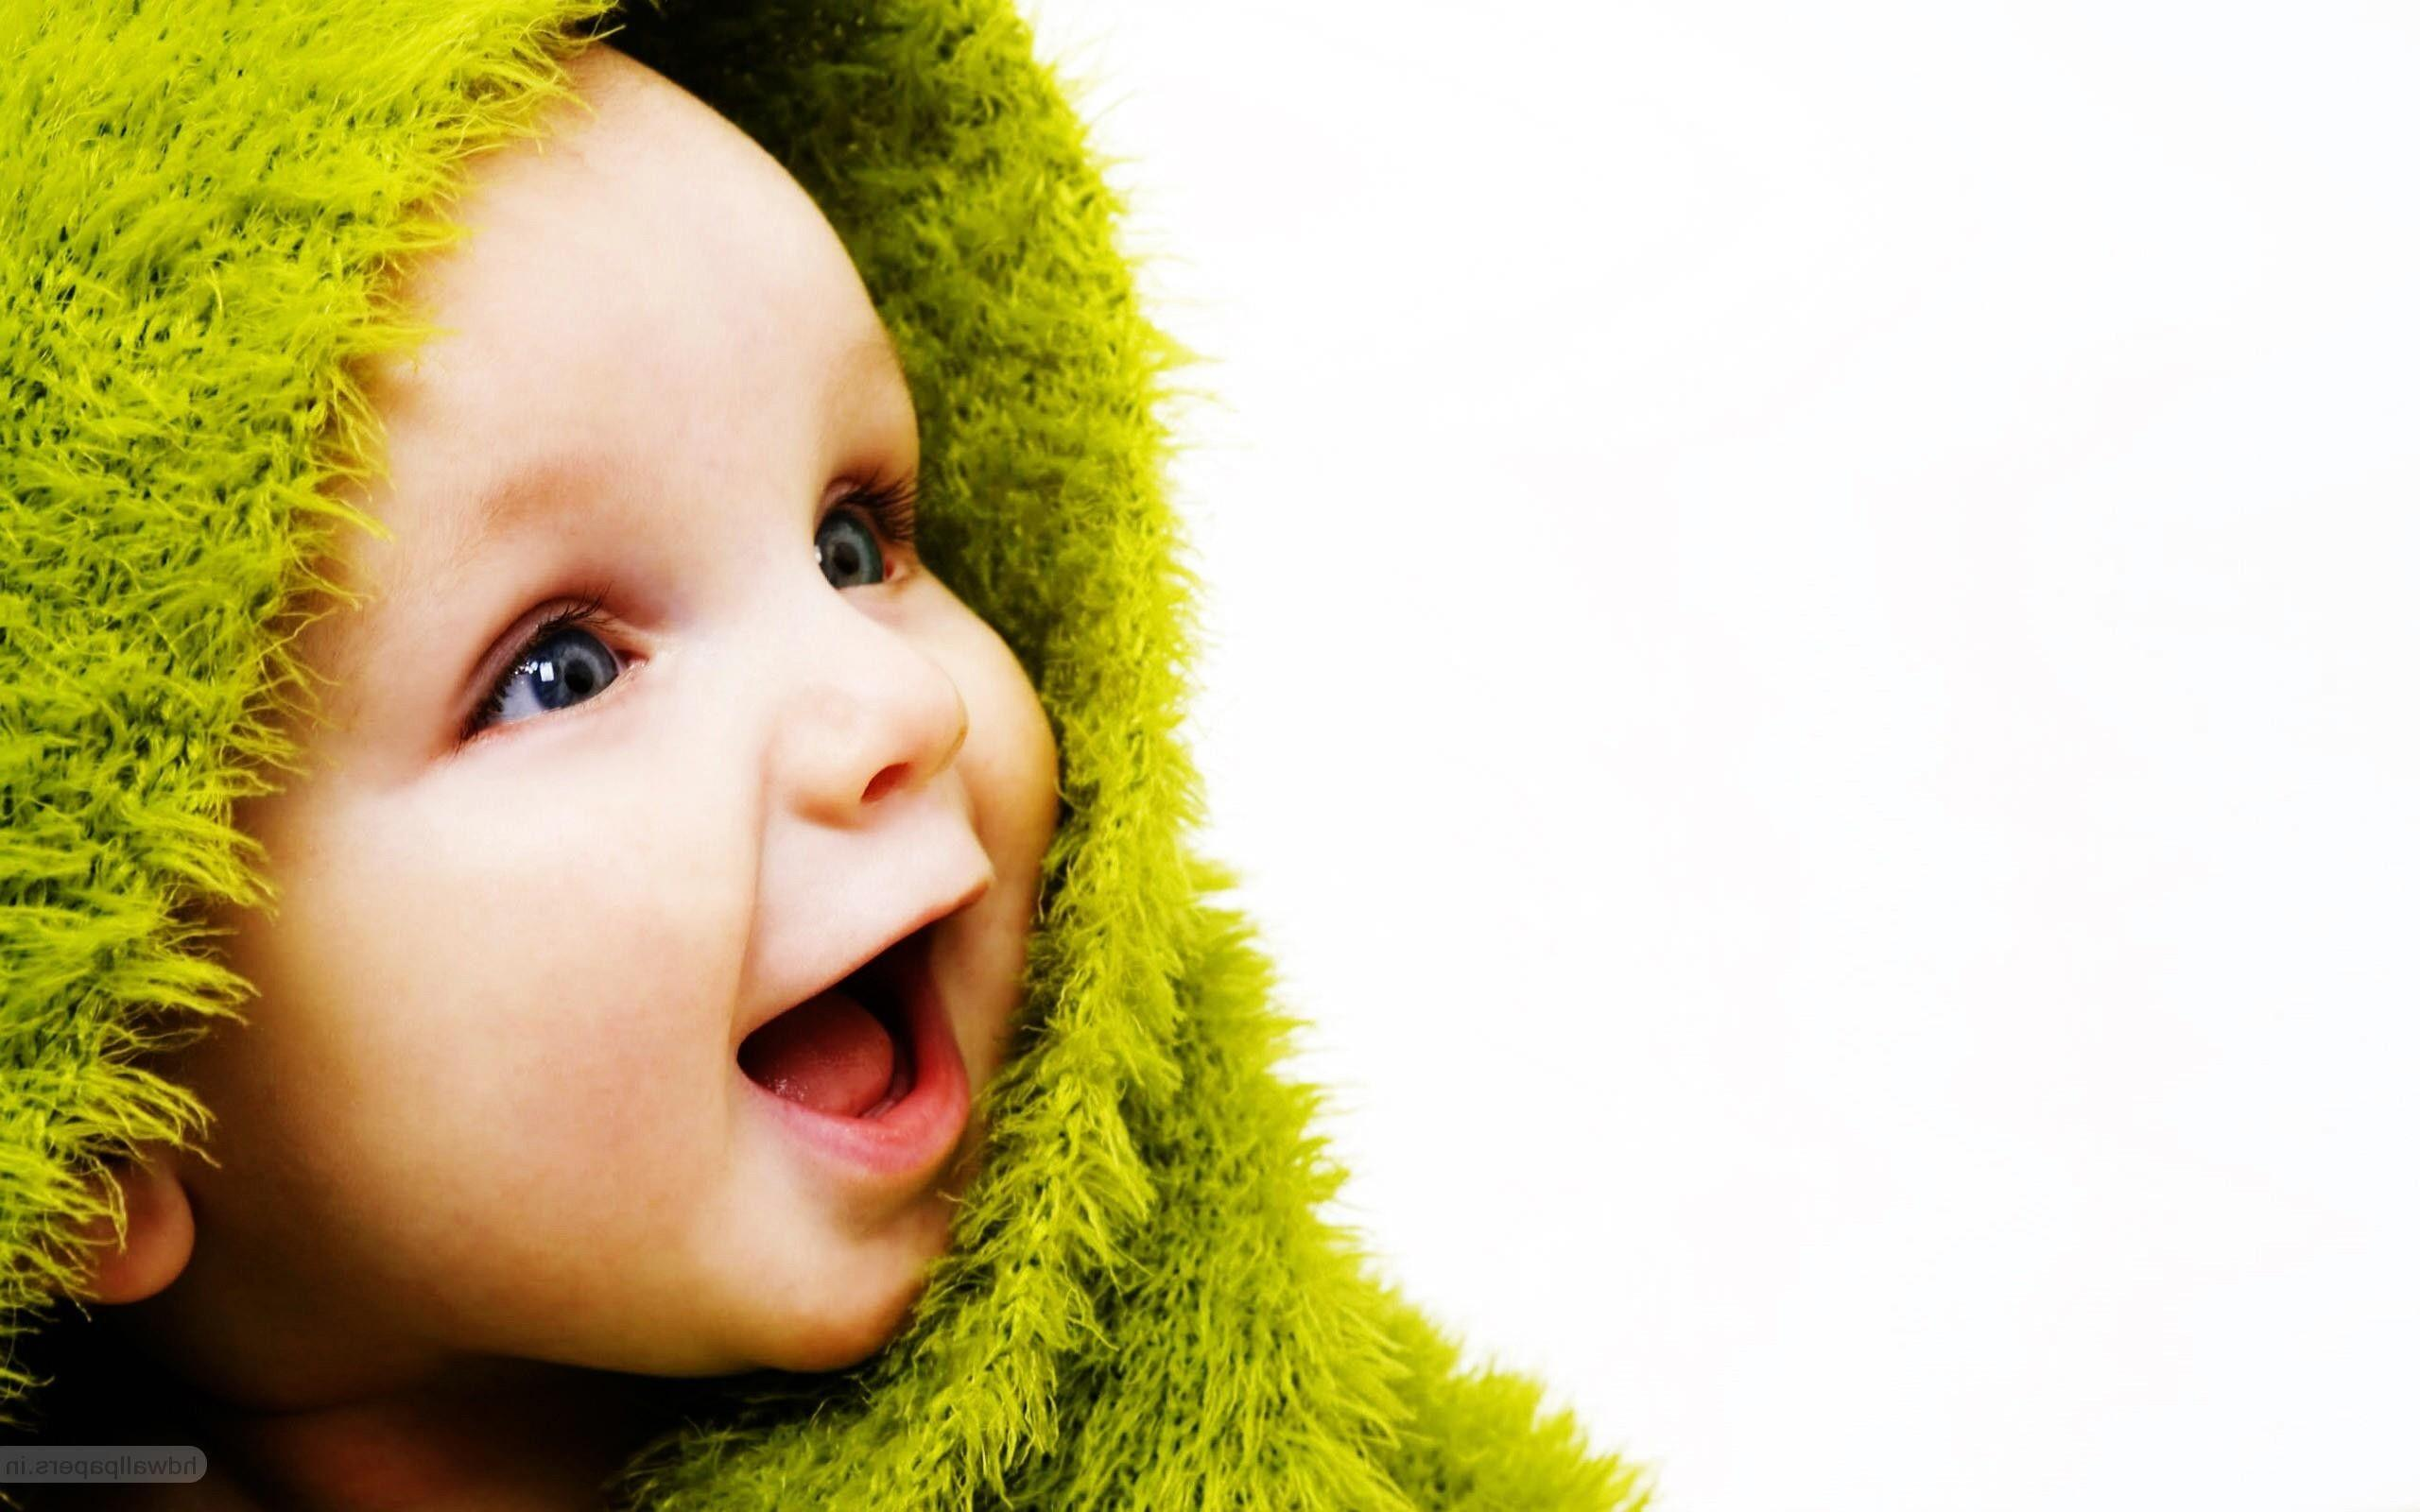 1024x640px Cute Wallpaper Download: Cute Baby Boy HD Wallpapers